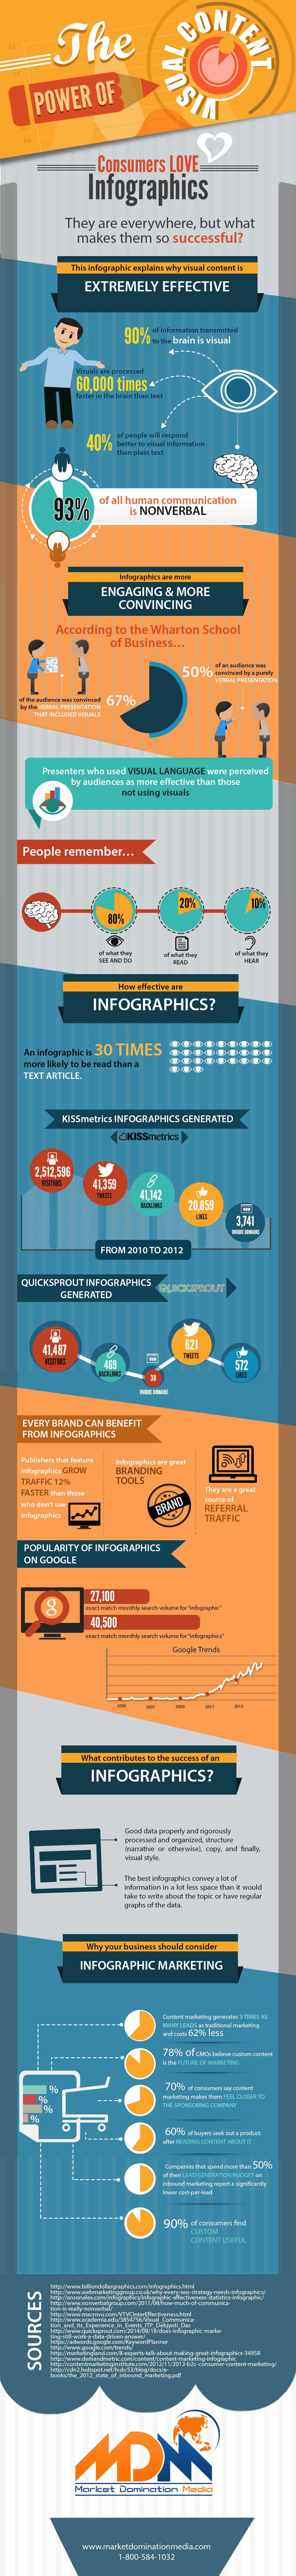 The Power of Visual Content - Why Consumers Love Infographics So Much